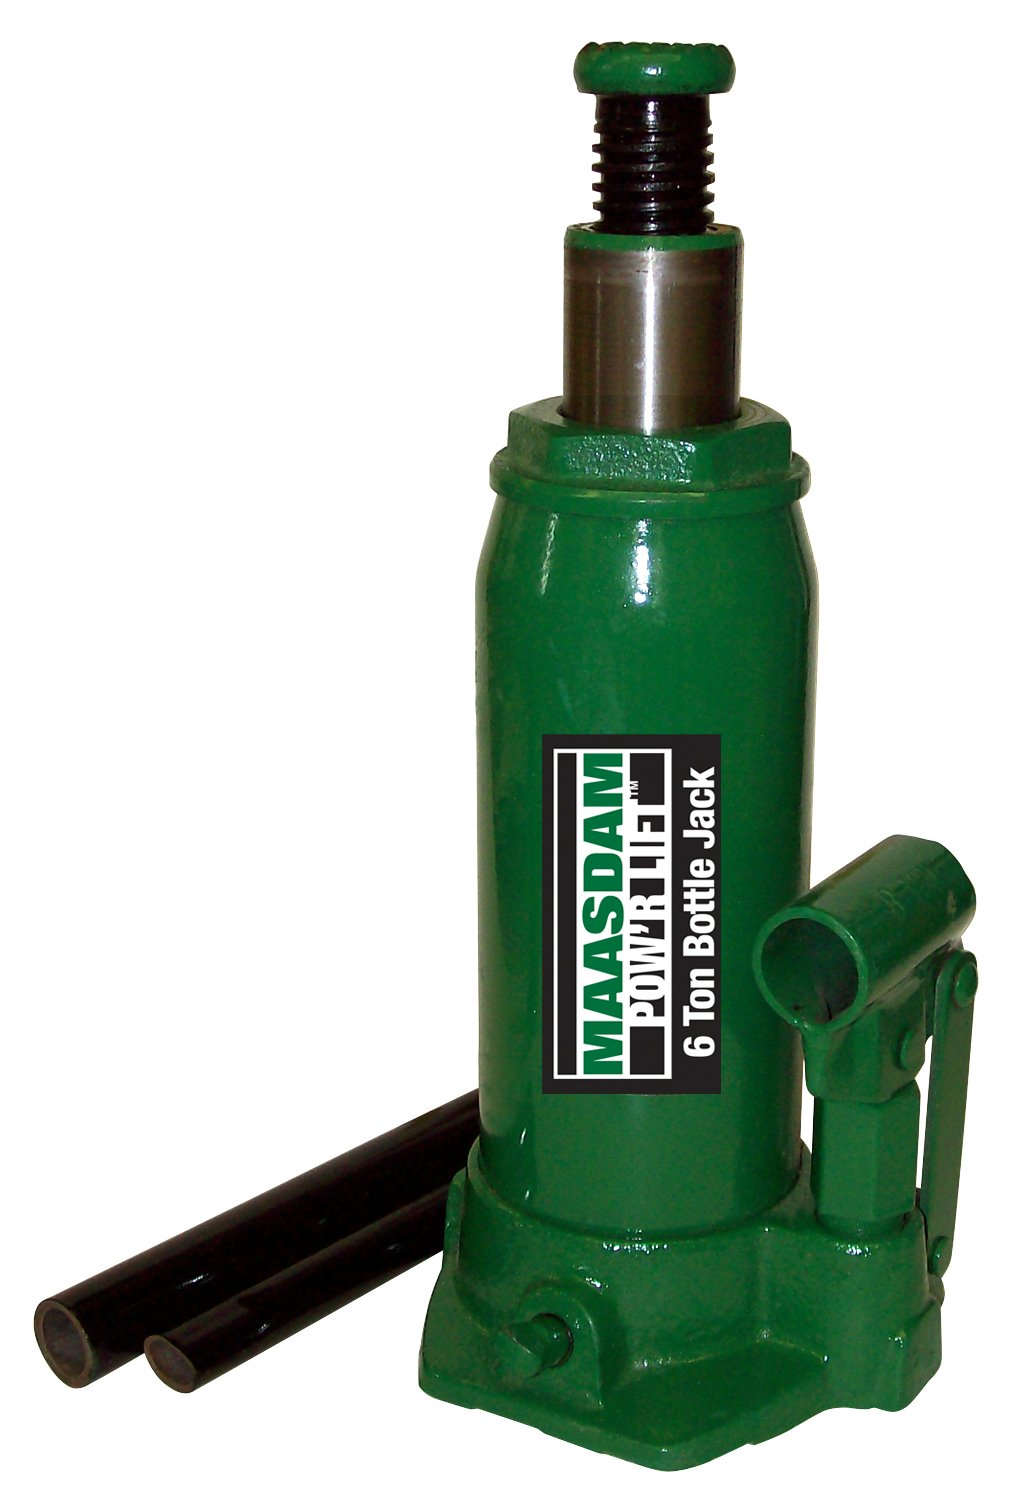 Maasdam MPL6B Bottle Jack, 6 Ton, Green